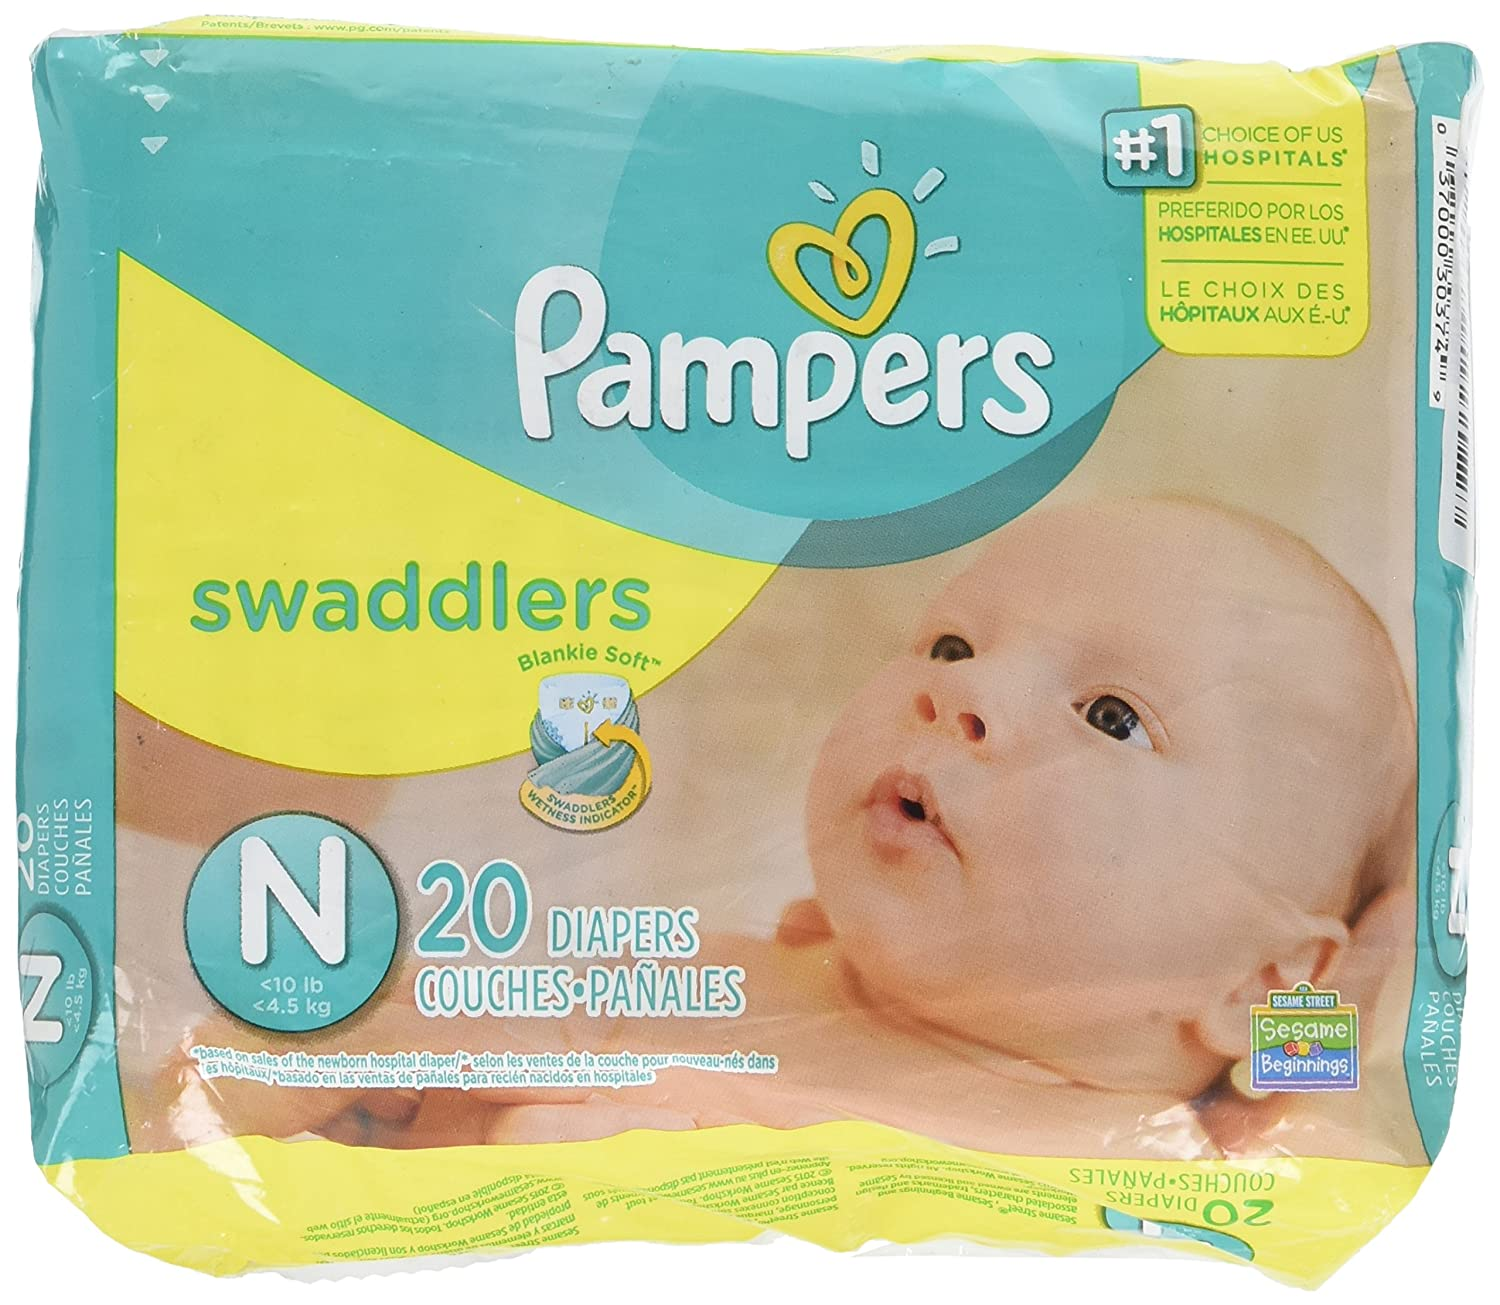 532b2442396 Amazon.com : Pampers Swaddlers Diapers, Newborn (Up to 10 lbs.), 20 Count :  Other Products : Baby